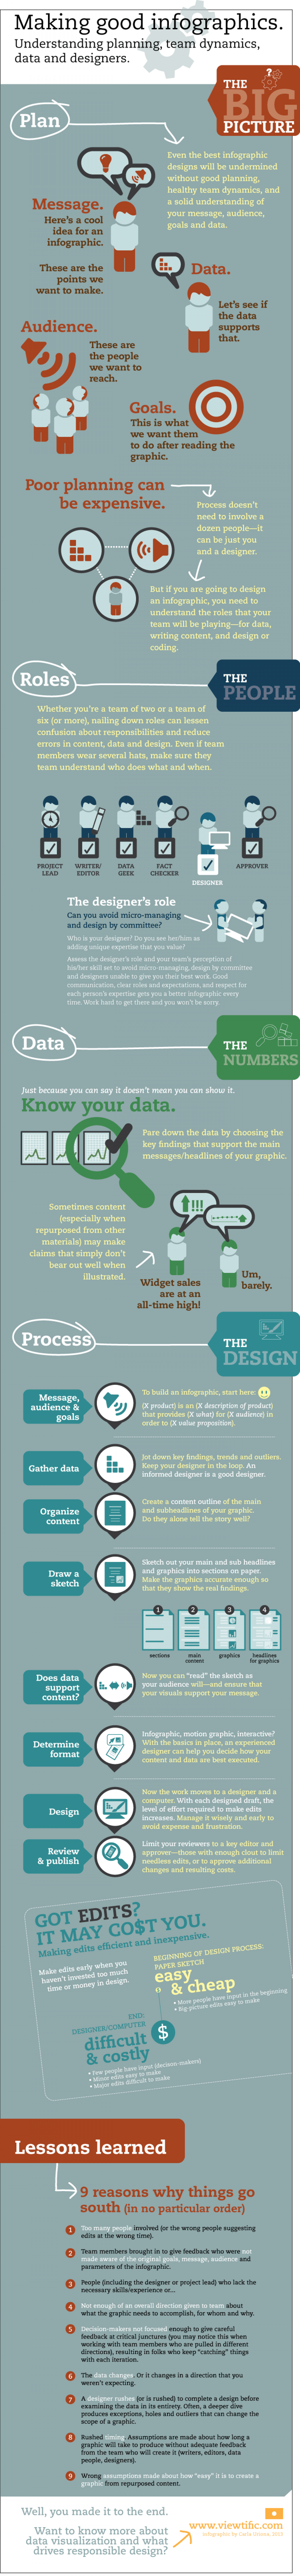 Making Good Infographics Infographic